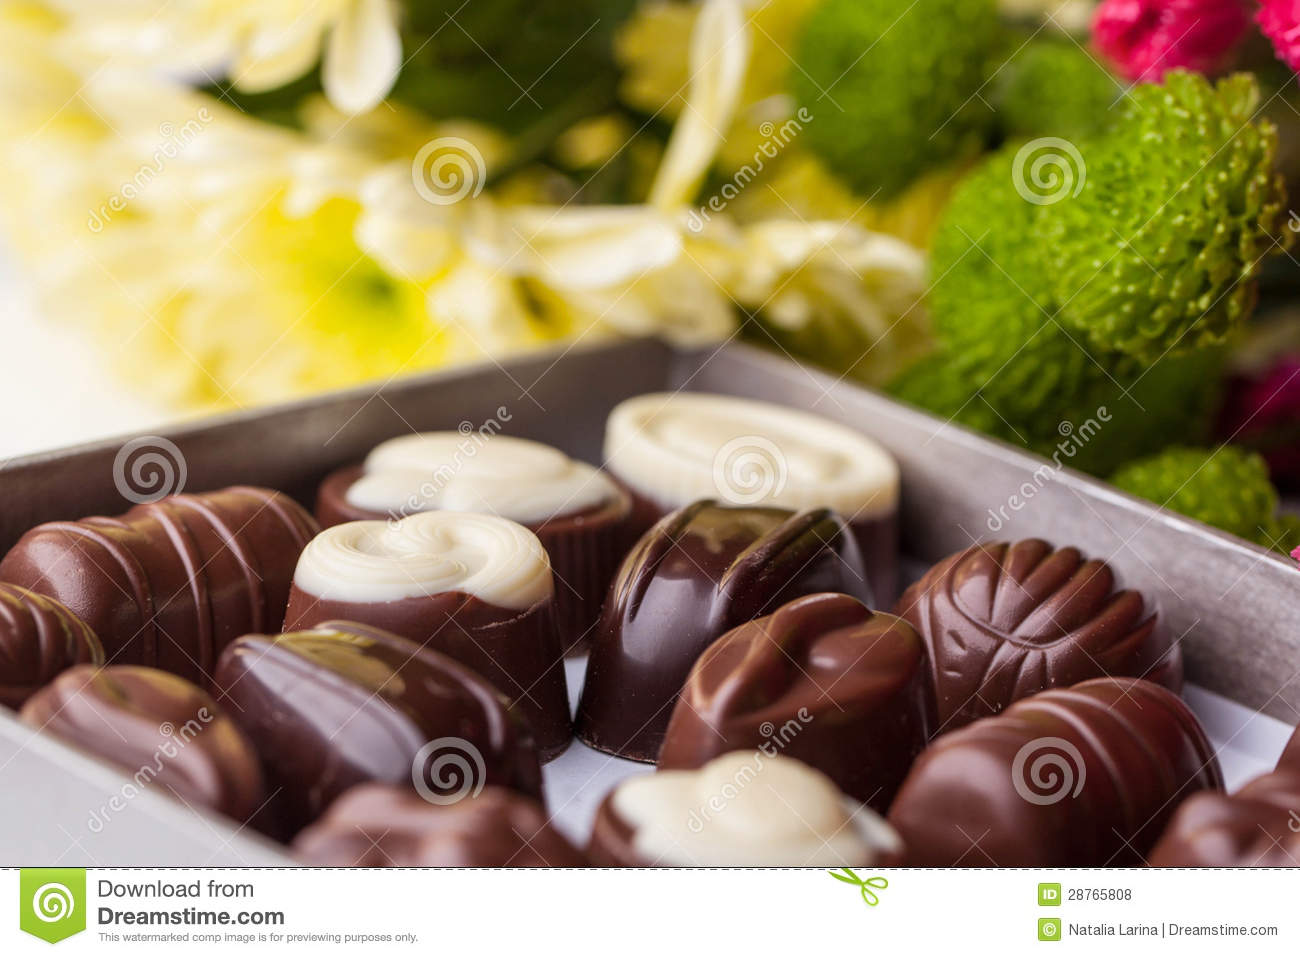 Chocolate Candy And Flowers Royalty Free Stock s Image